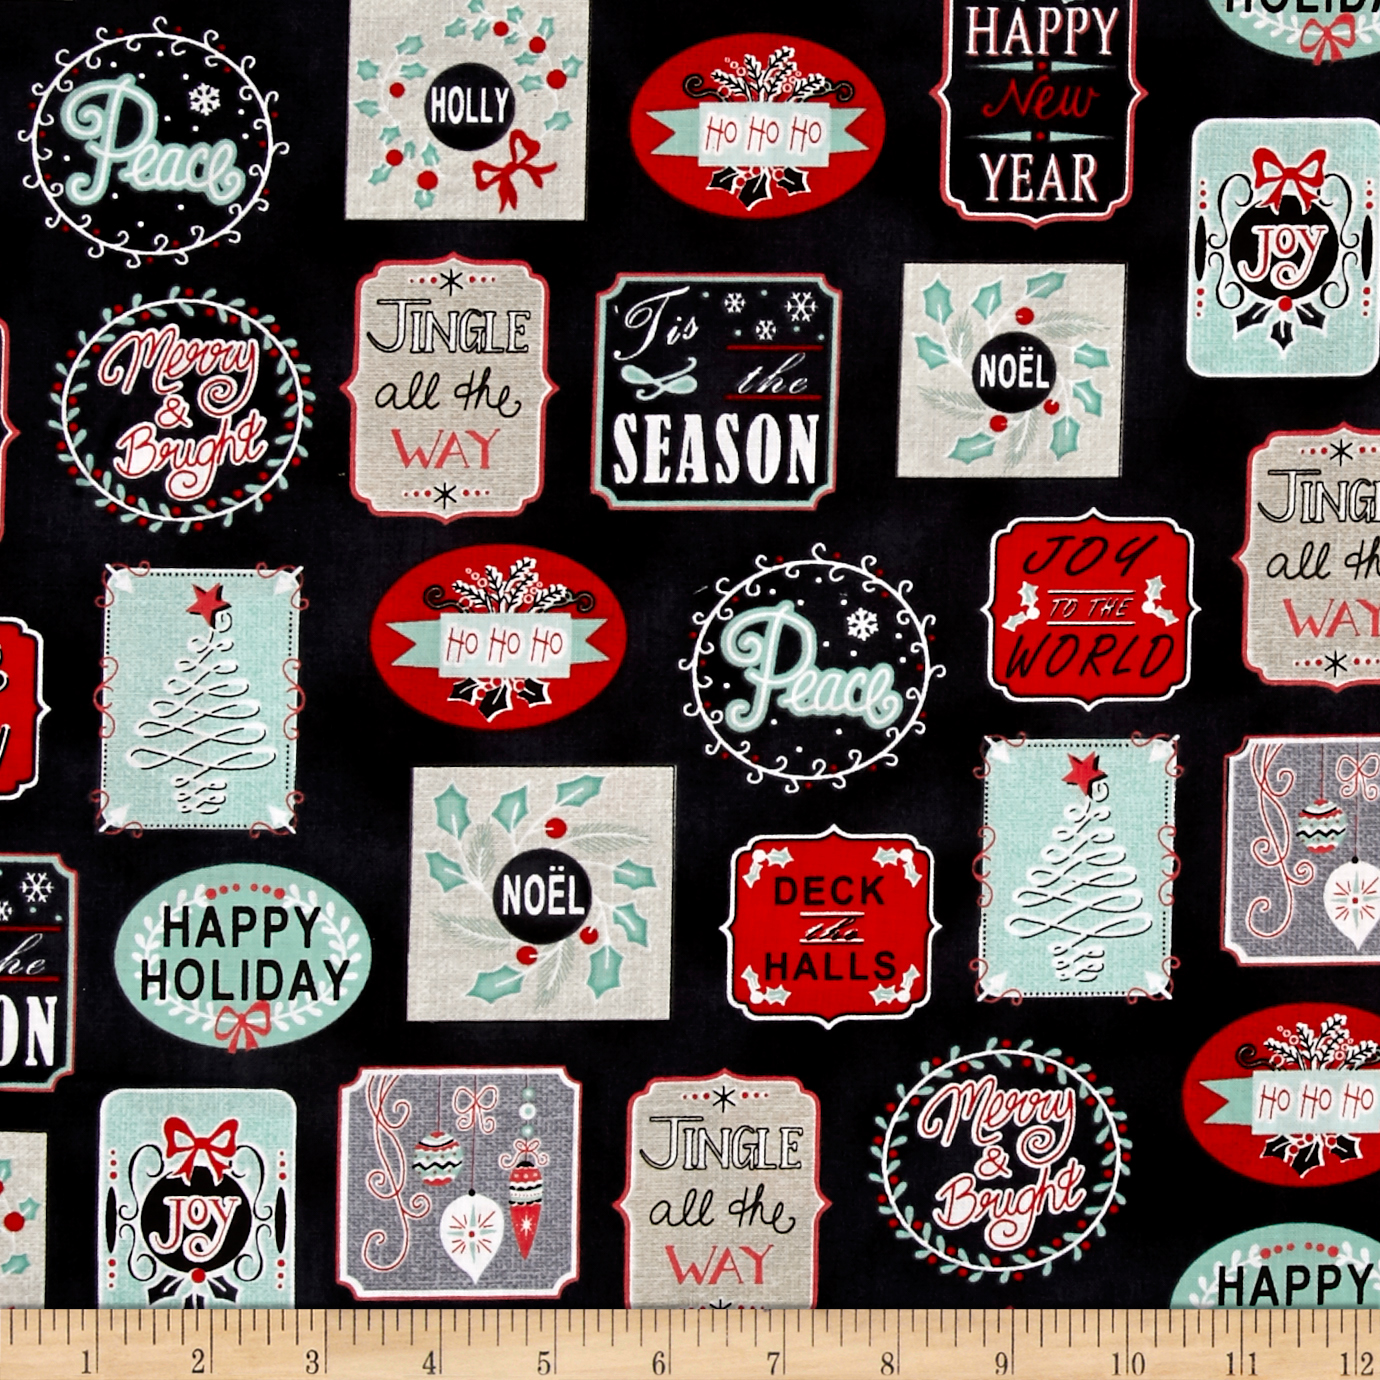 Christmas Wishes Holiday Work Labels Black Fabric by Stardom Specialty in USA